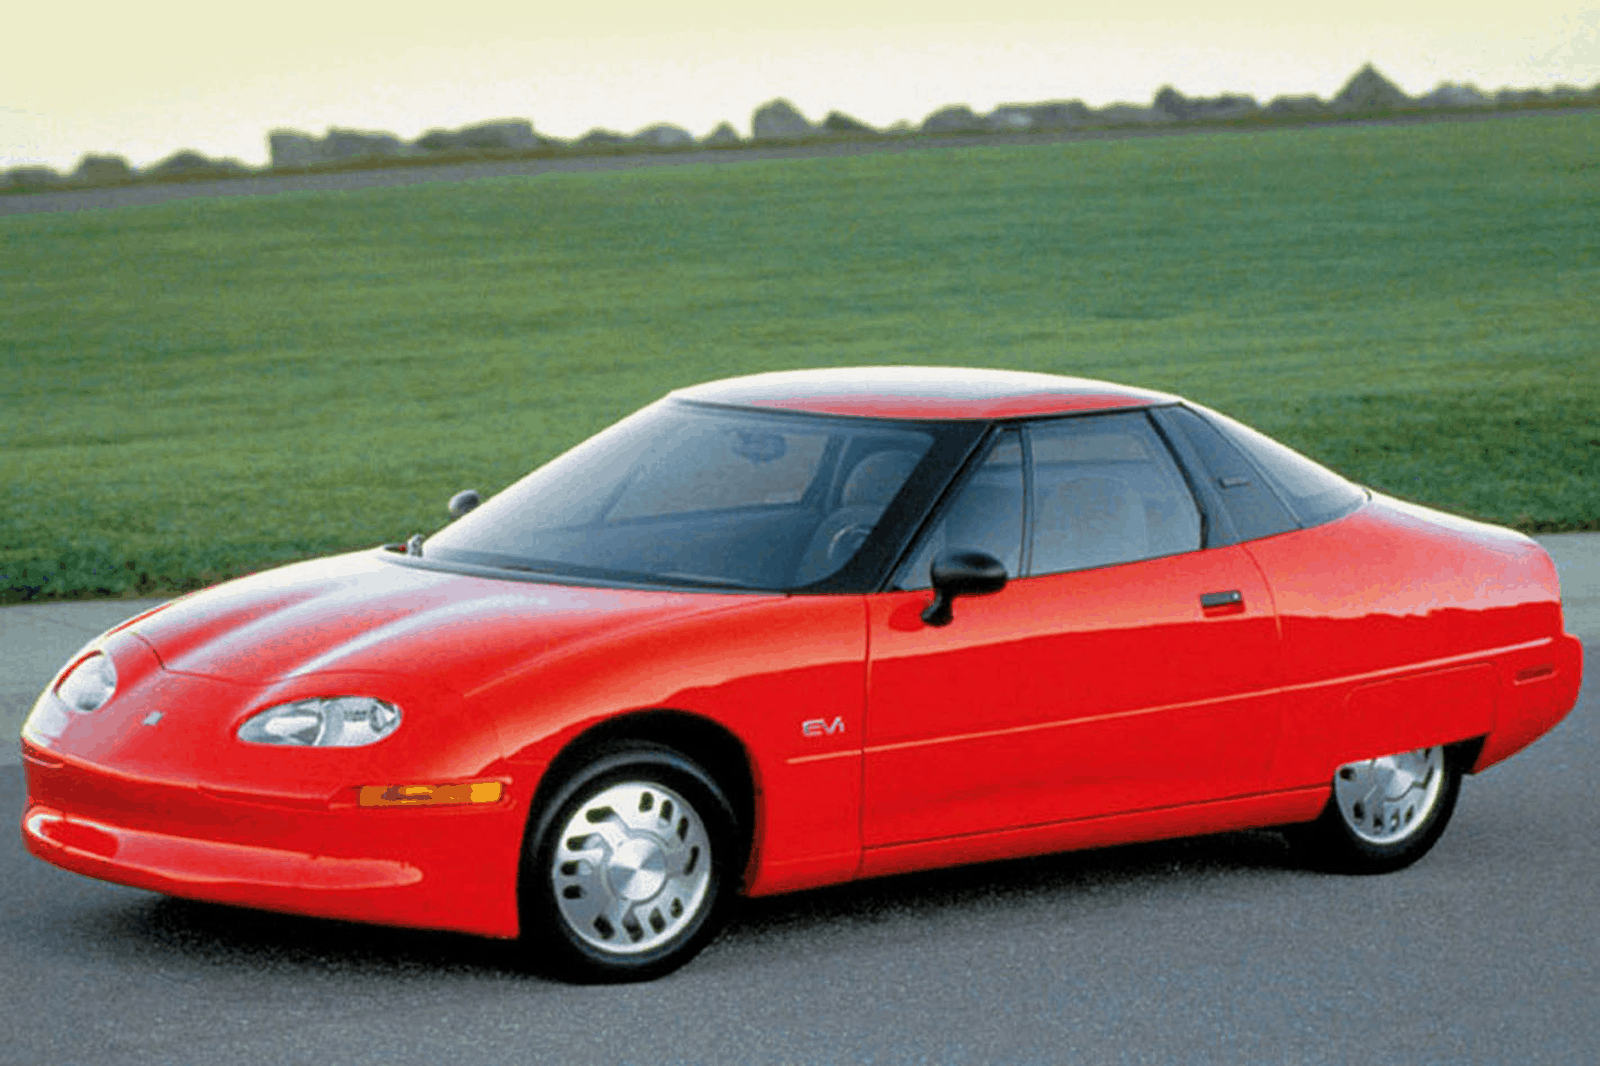 The first modern electric car - EV1 Electric